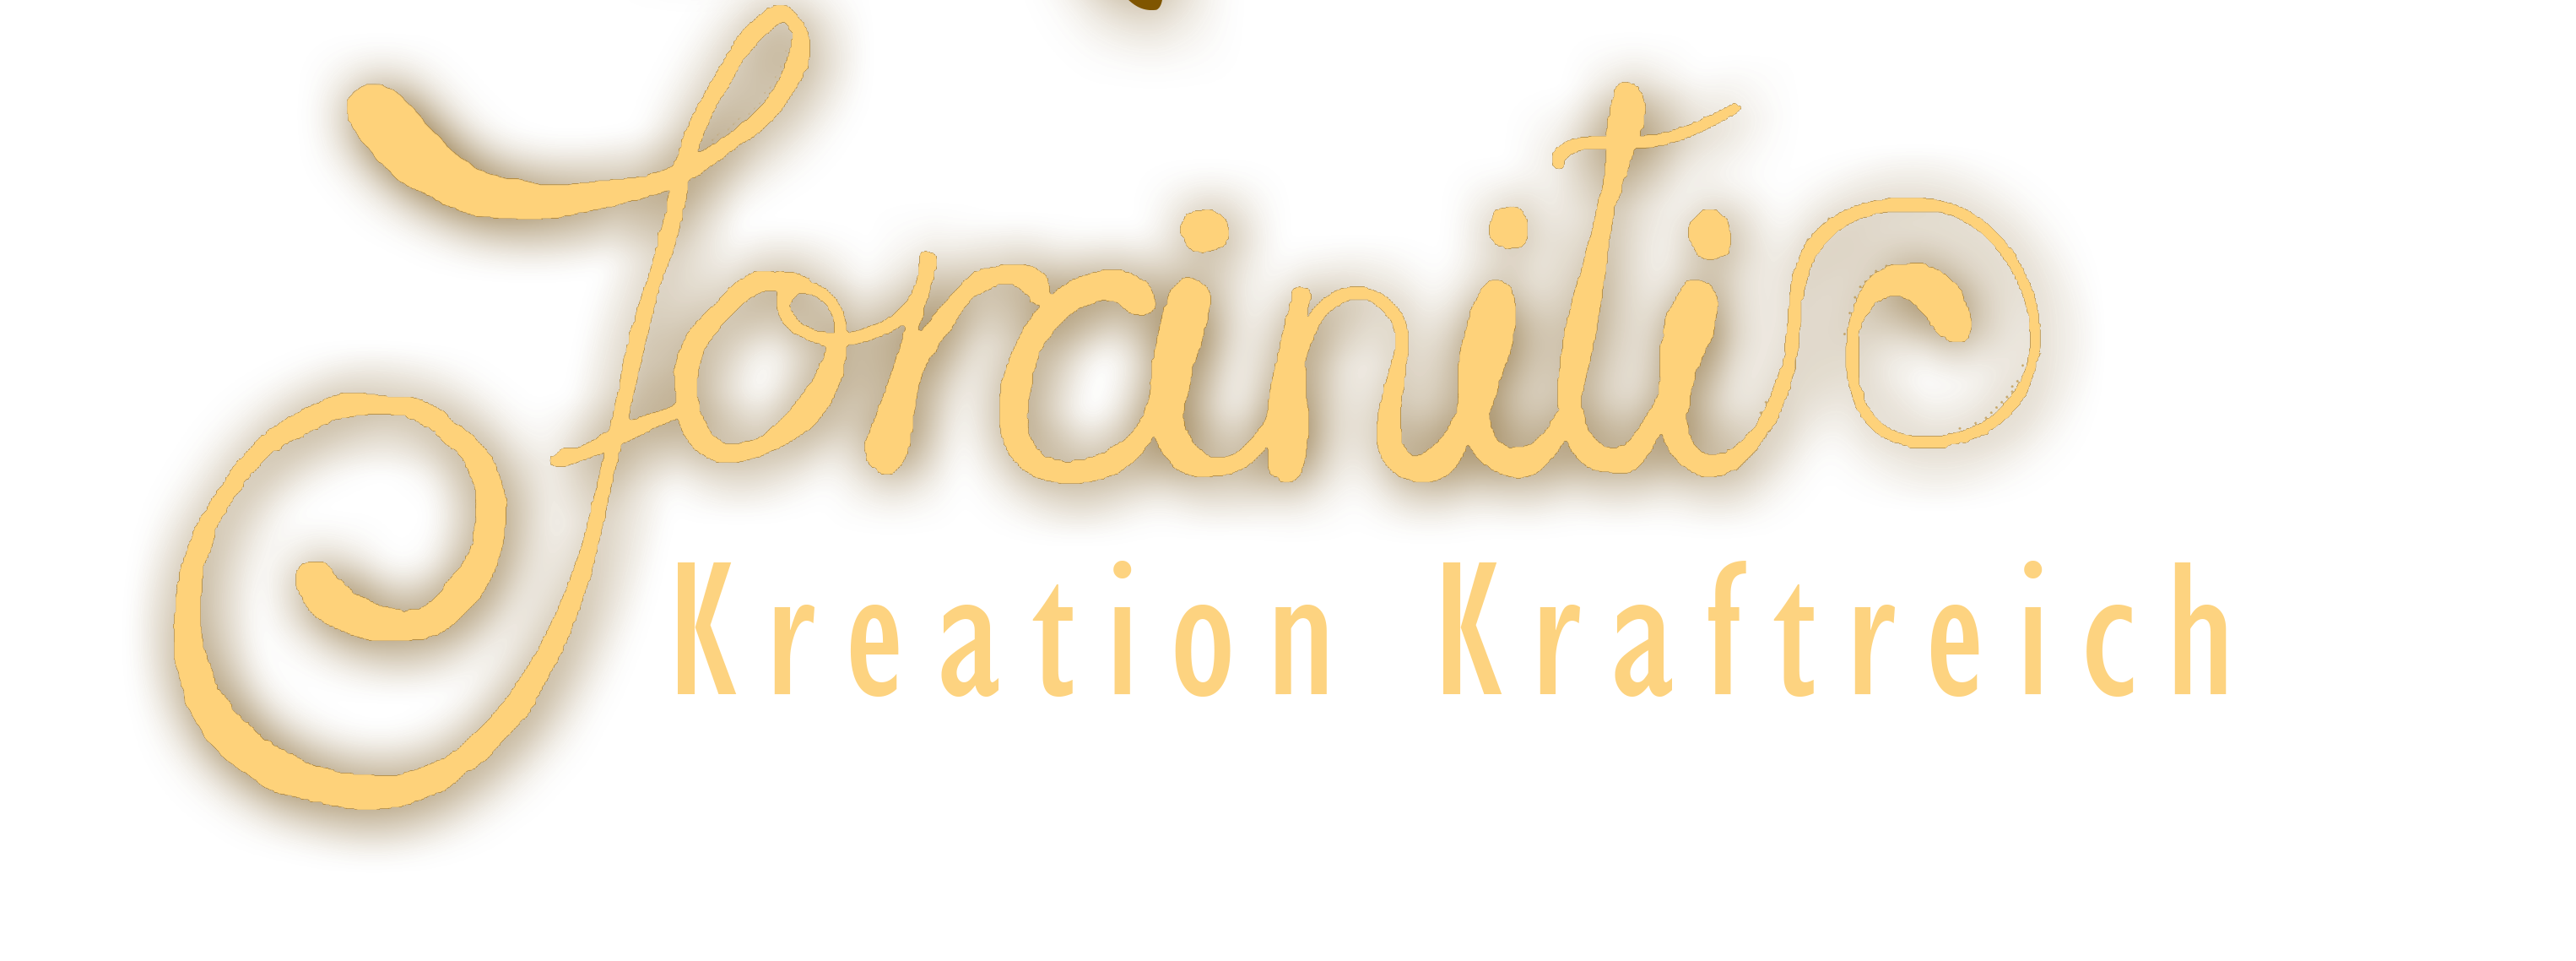 Kreation Kraftreich | Forciniti